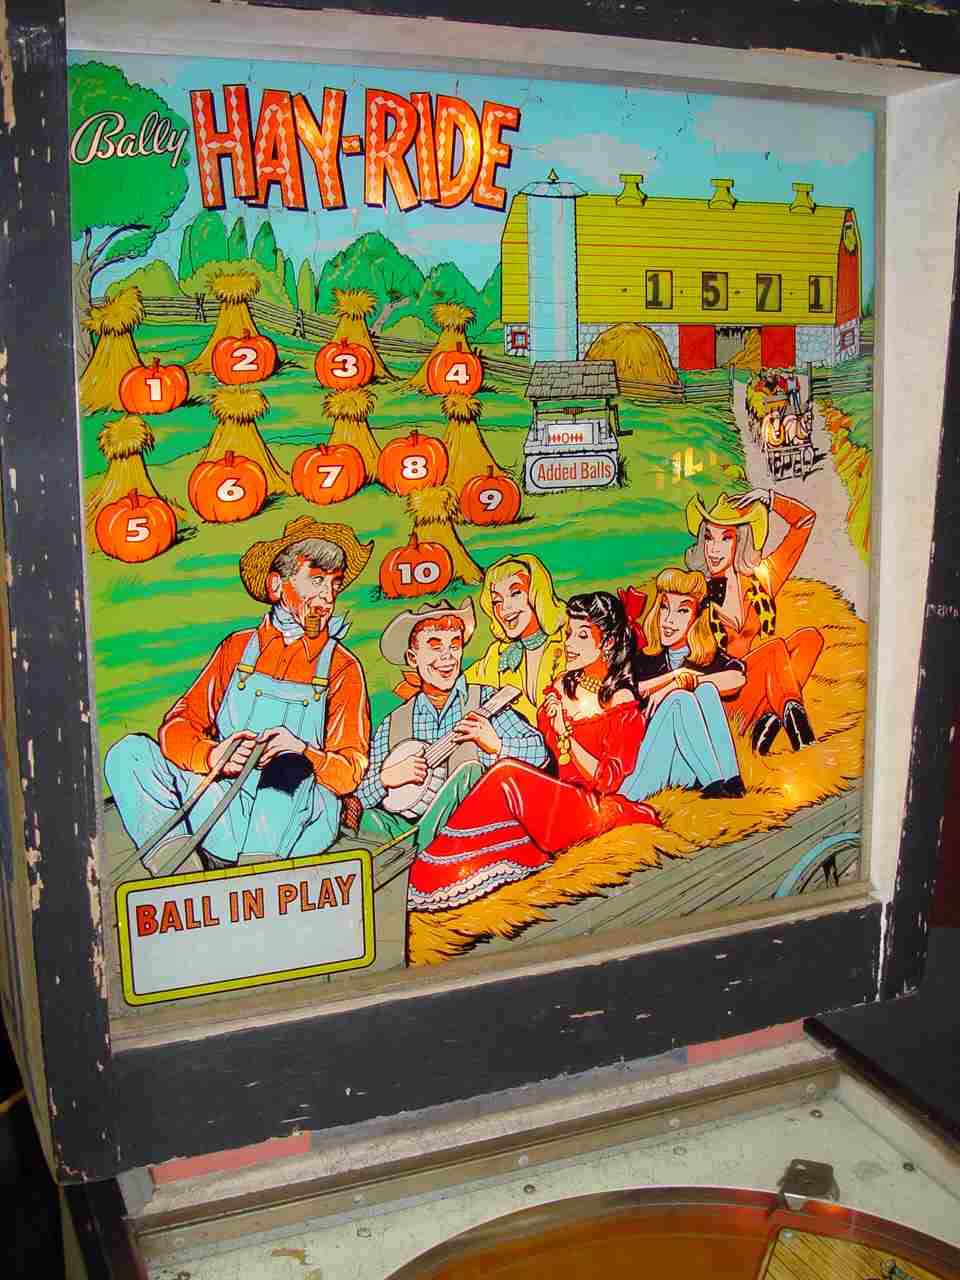 1964 Bally Hay-Ride Pinball Machine For Sale at R-Kade Games in Massachusetts